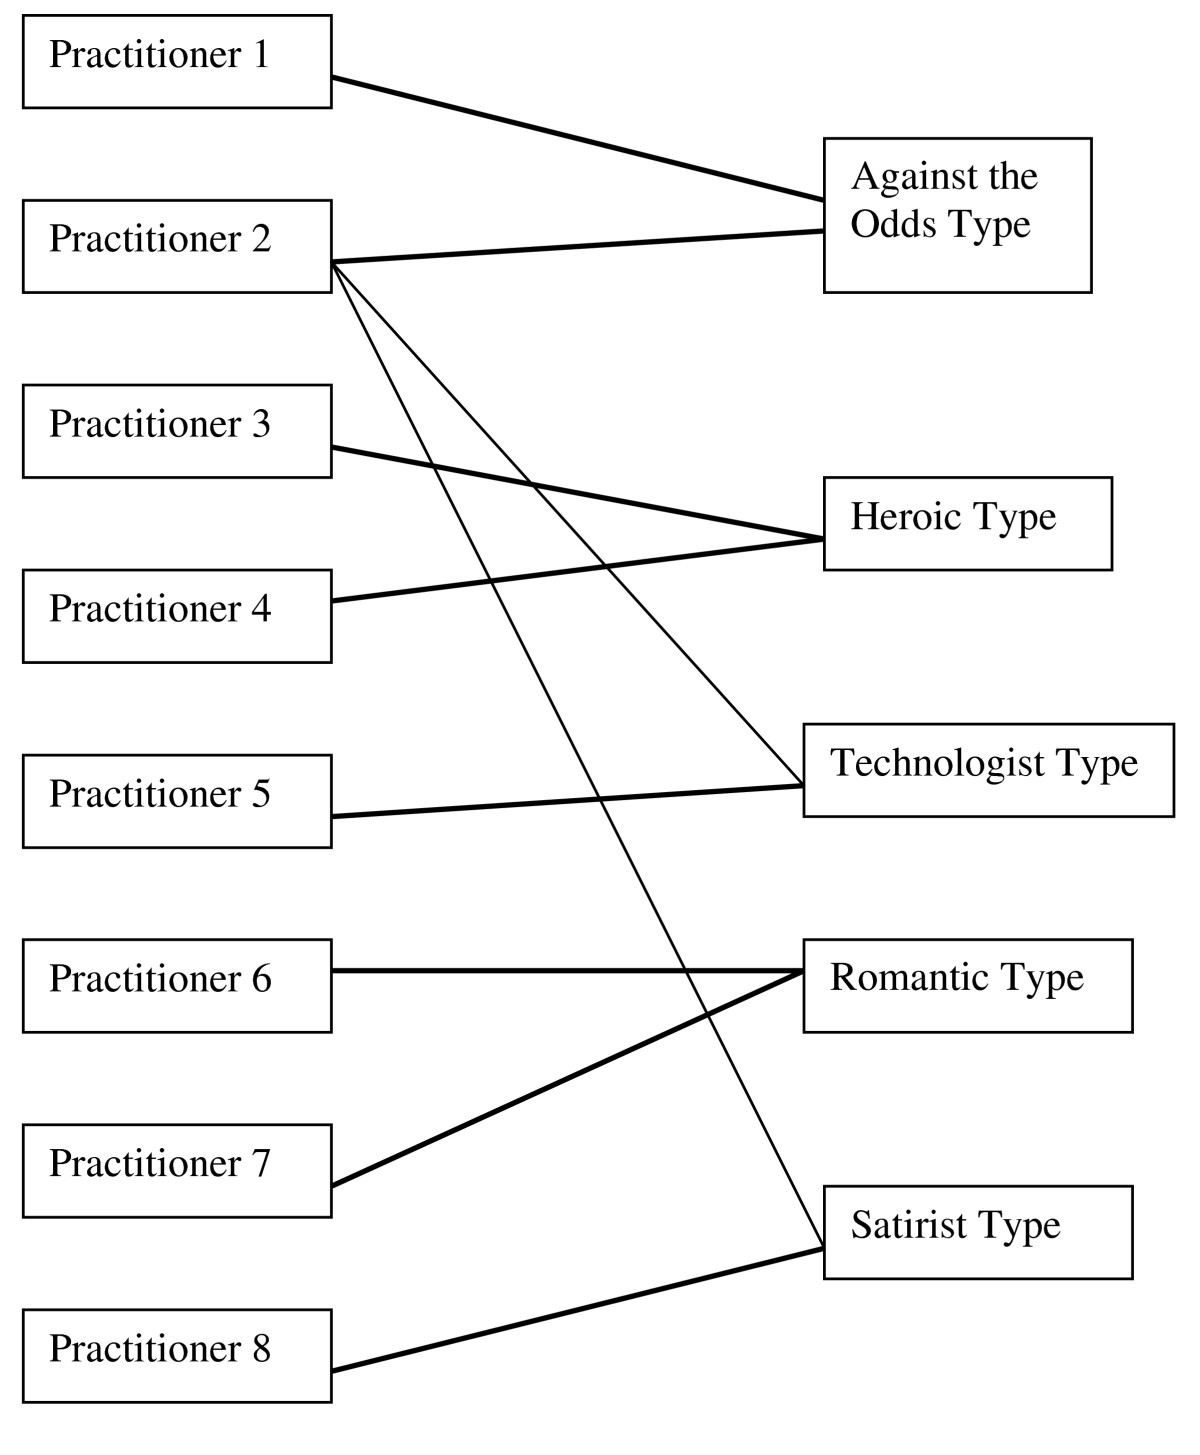 http://static-content.springer.com/image/art%3A10.1186%2F1748-5908-4-80/MediaObjects/13012_2008_Article_212_Fig1_HTML.jpg